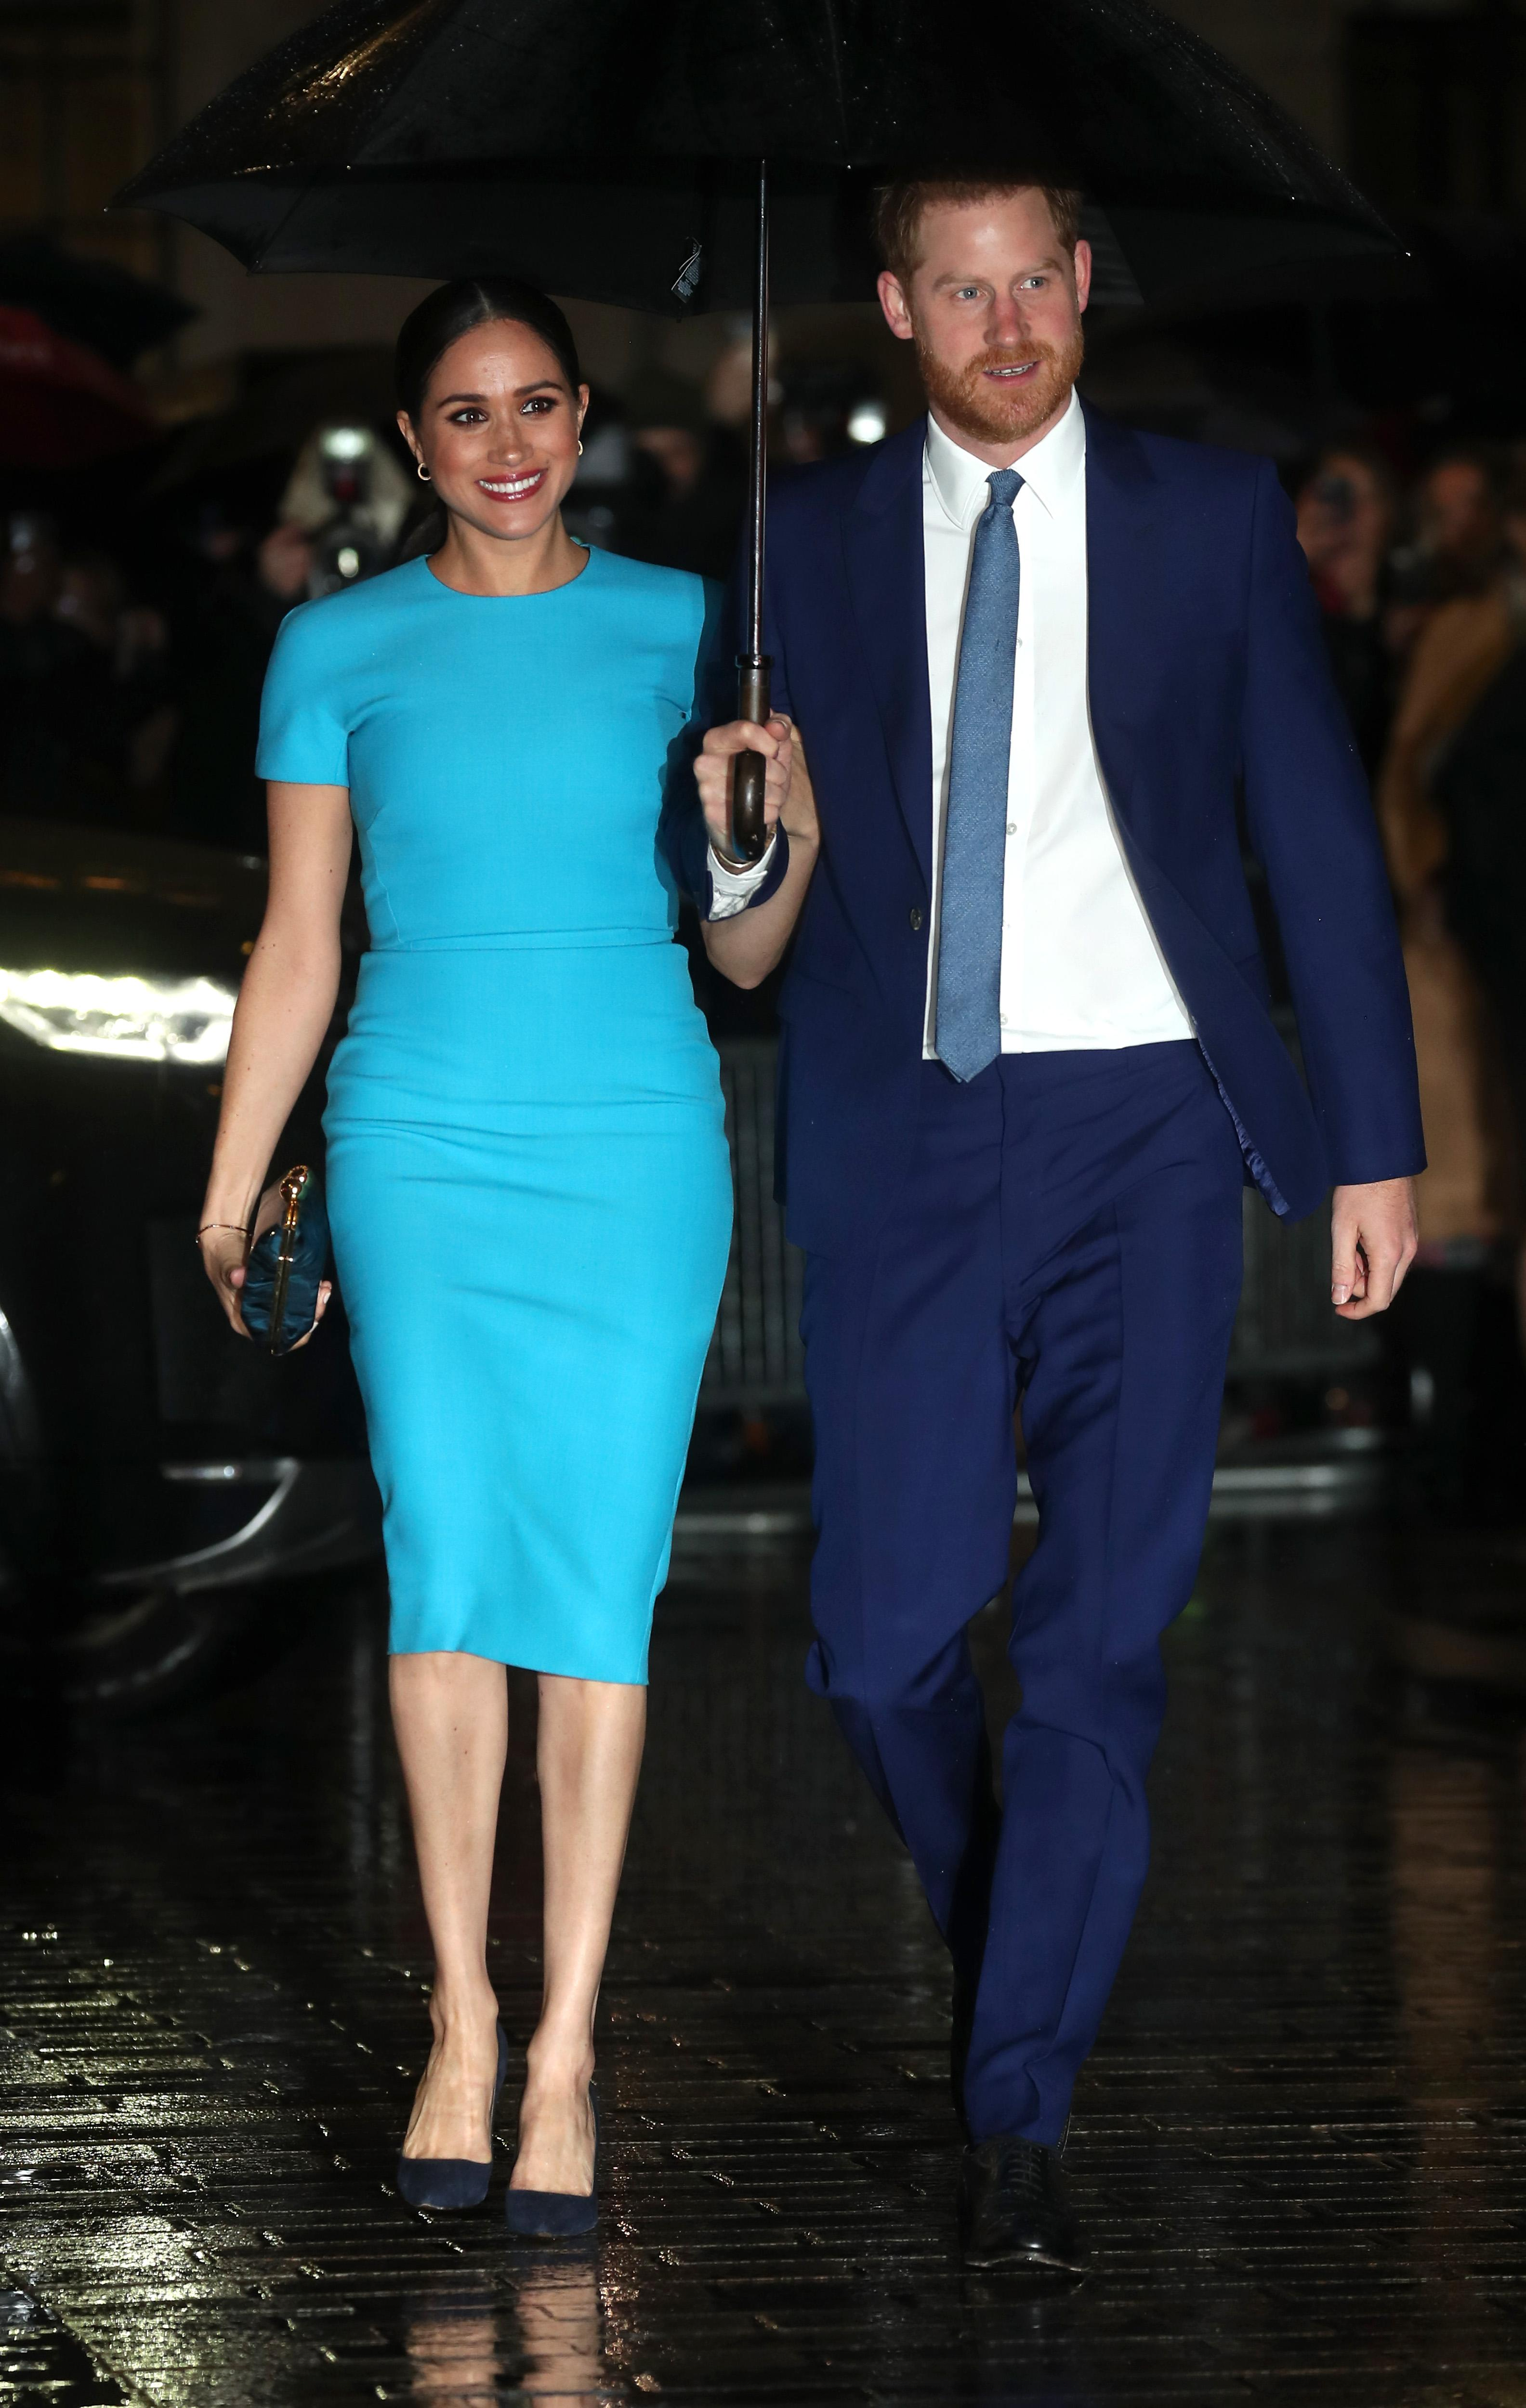 The Duke and Duchess of Sussex returned to the UK to attend The Endeavour Fund Awards. (Getty Images)